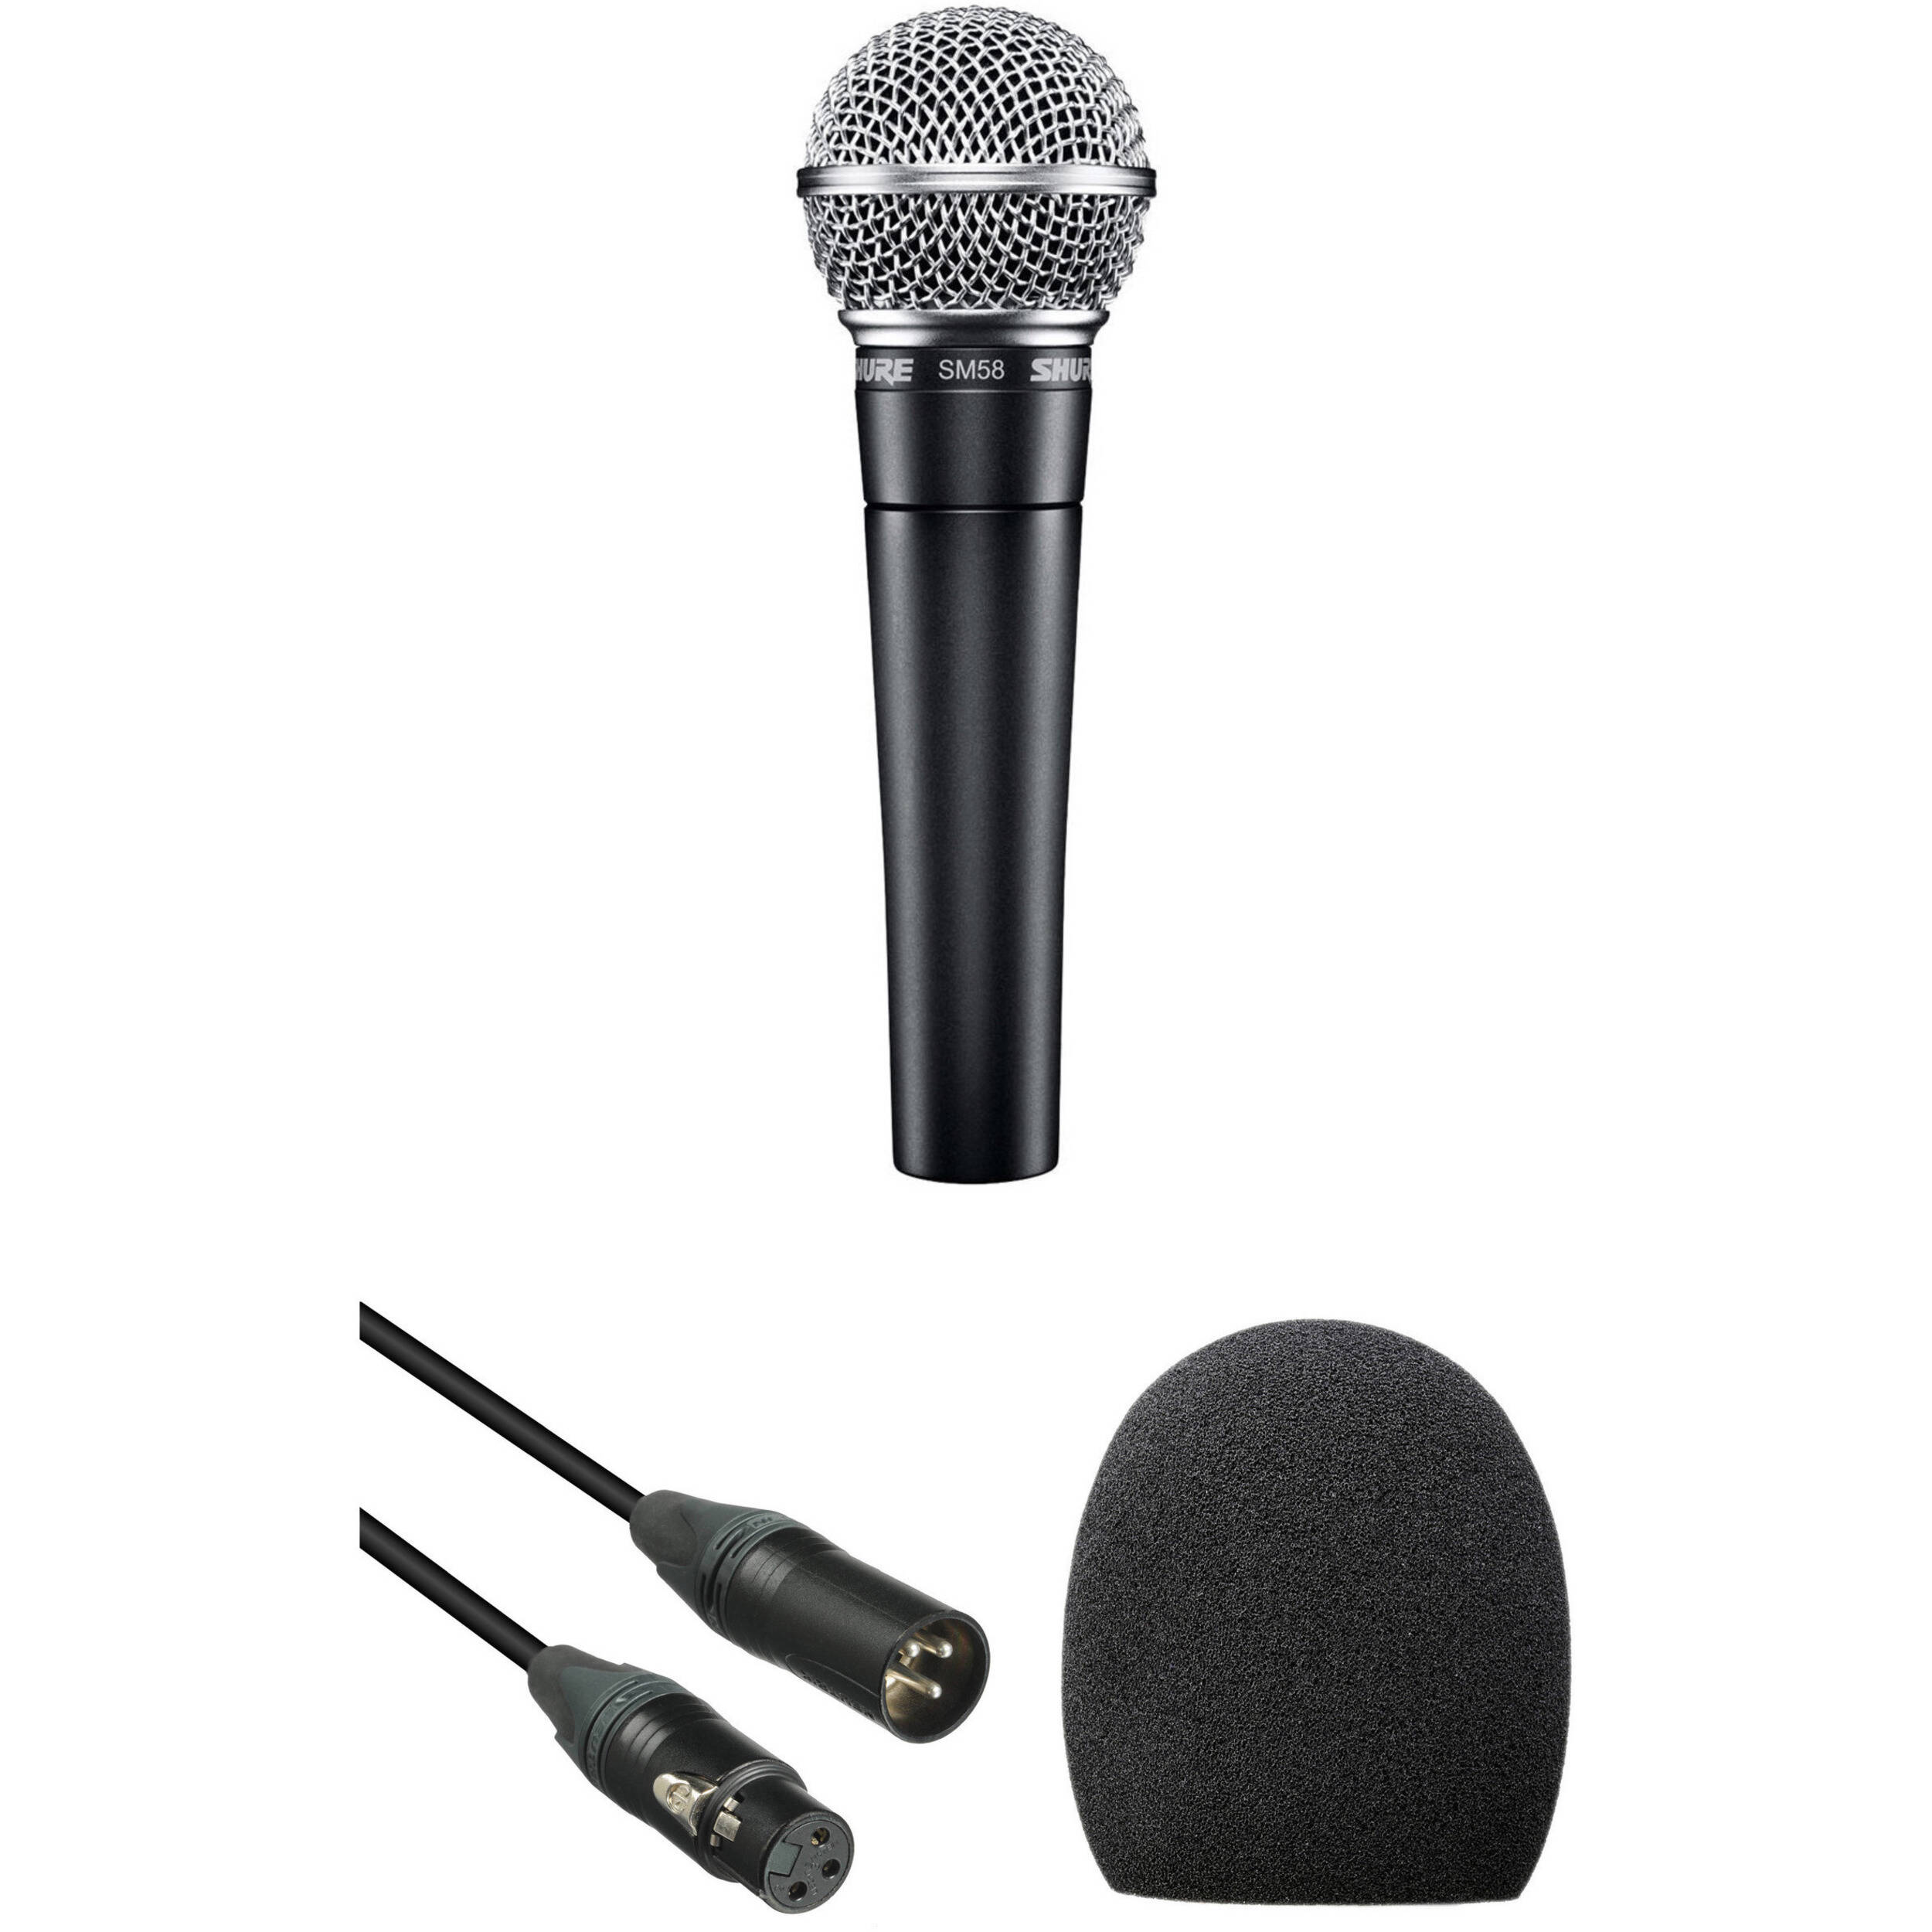 Shure SV100-W Dynamic Cardioid Handheld Microphone